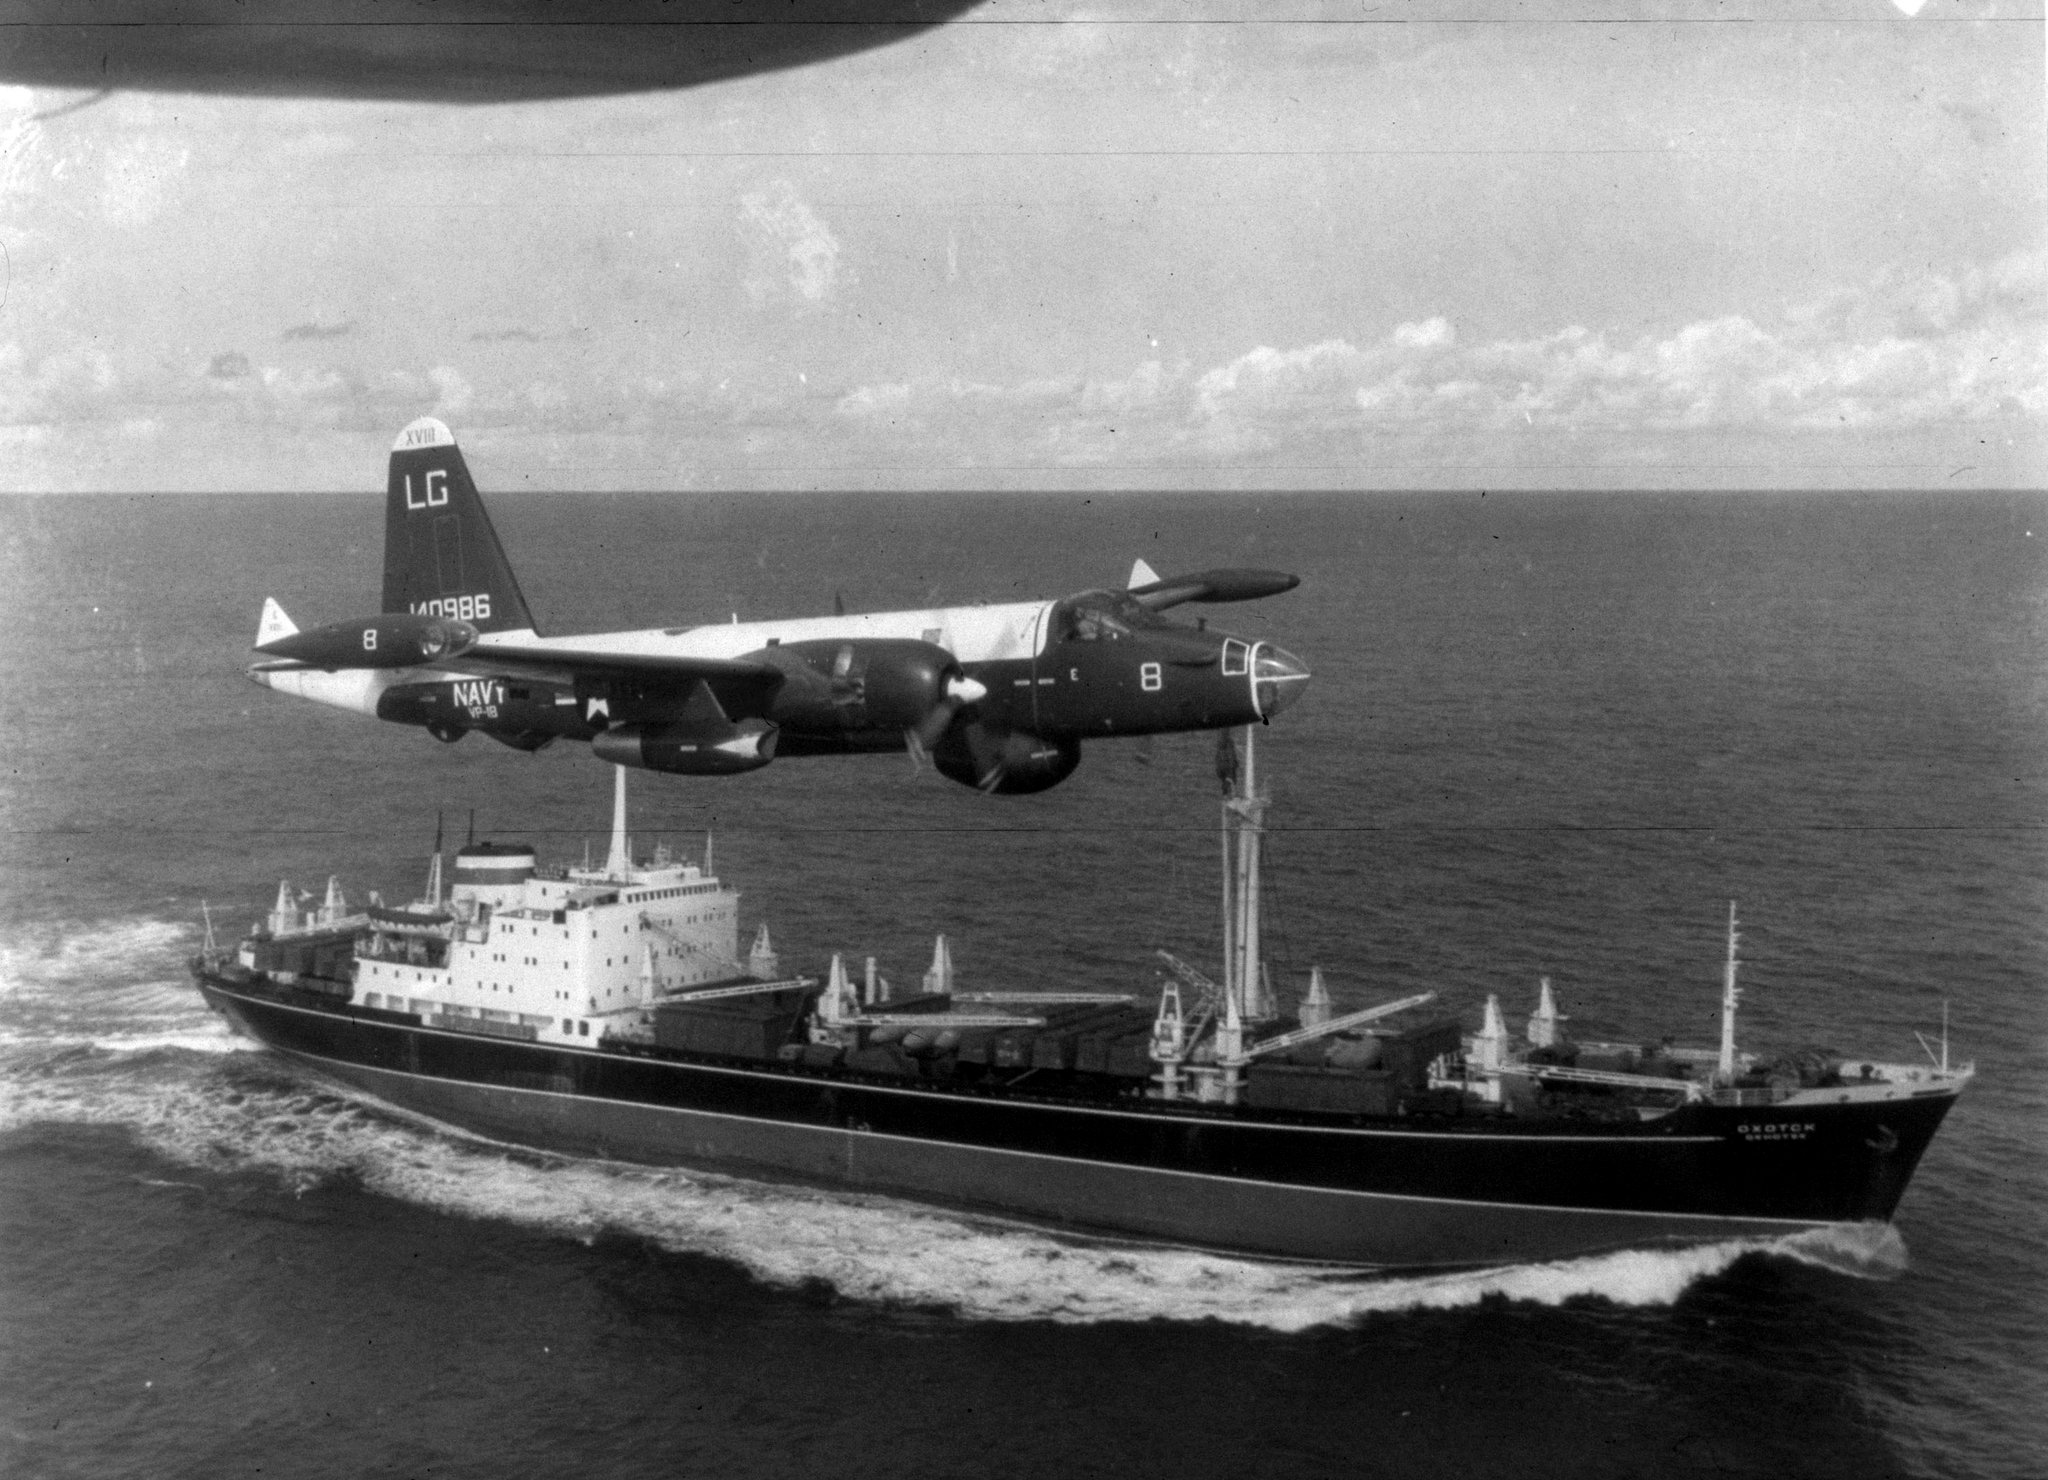 File:P-2H Neptune over Soviet ship Oct 1962.jpg